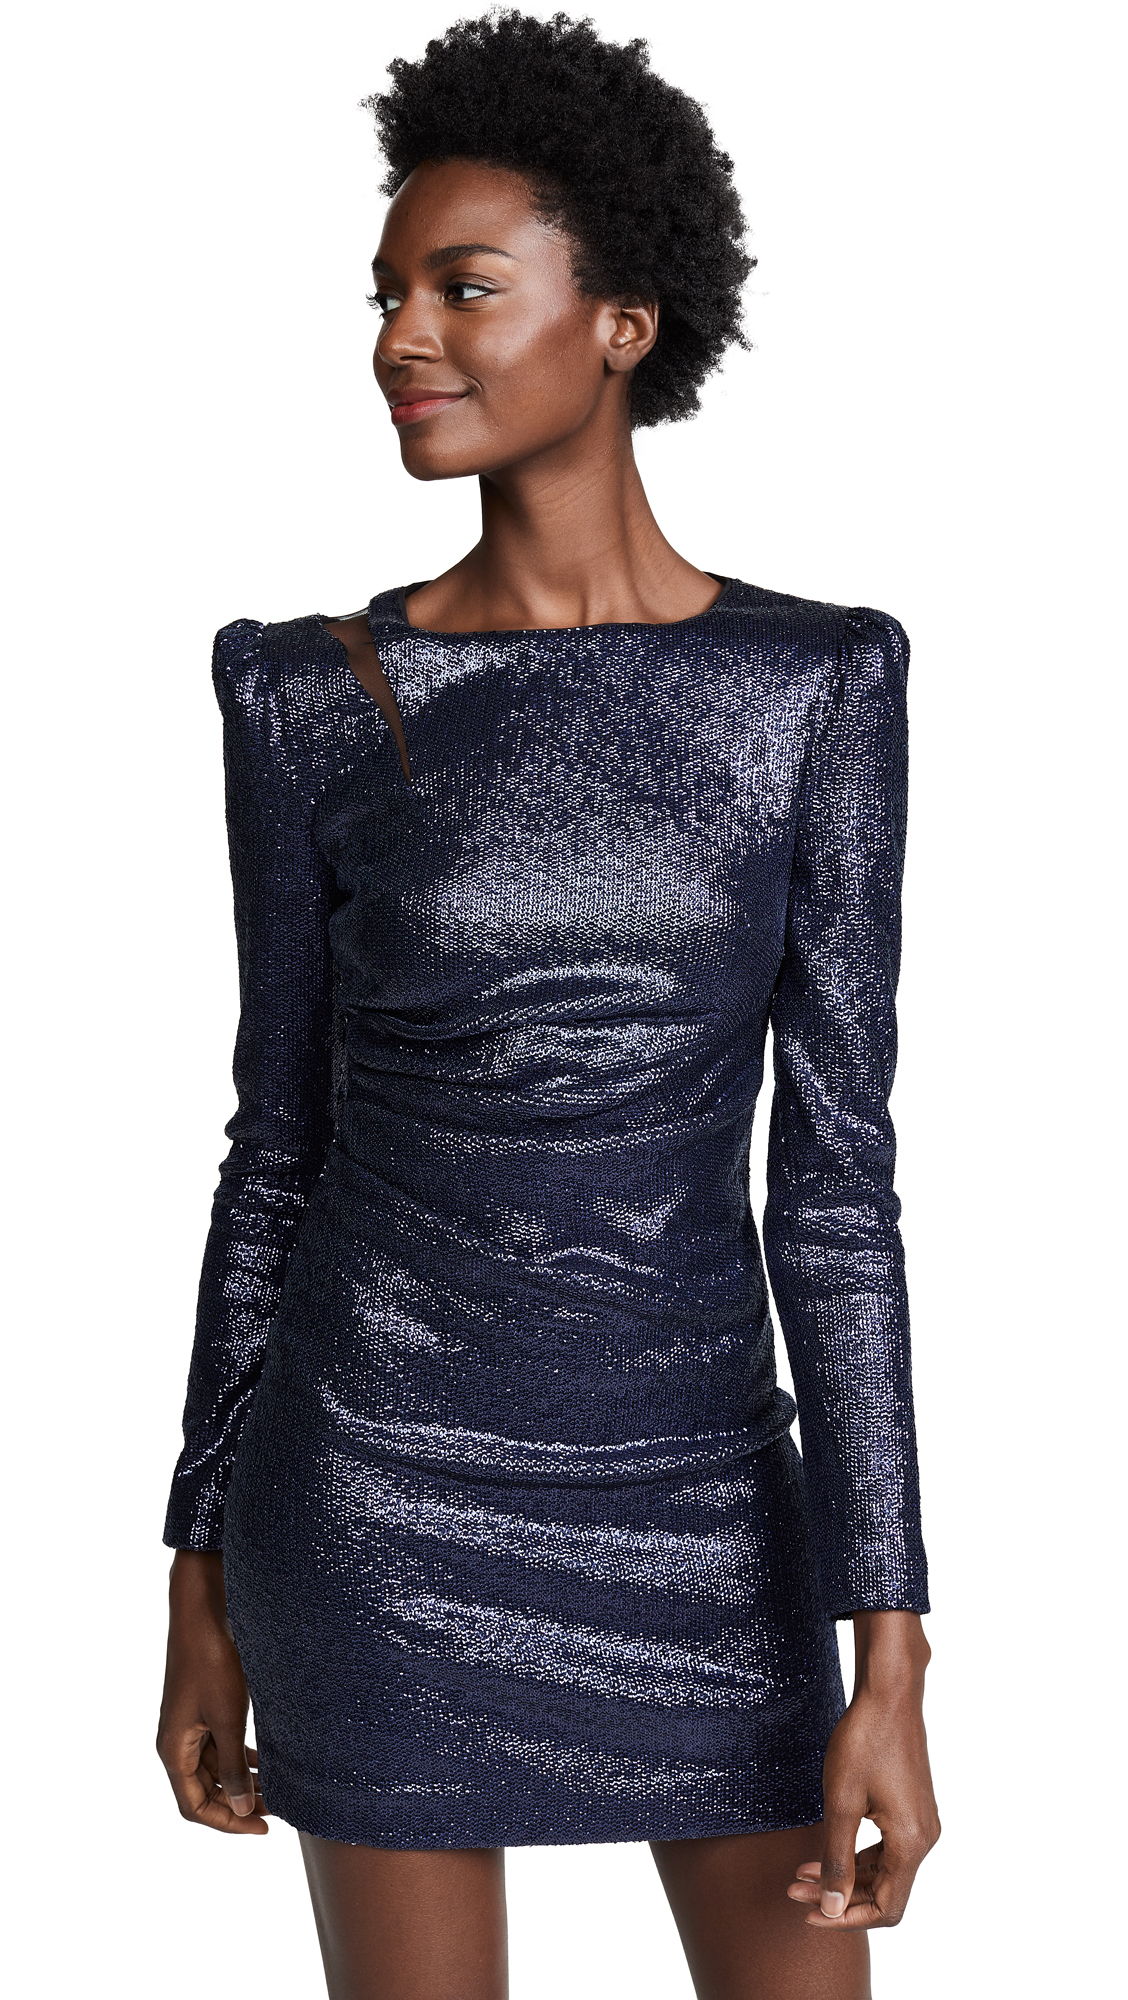 Rachel Zoe Juliette Sequin Dress